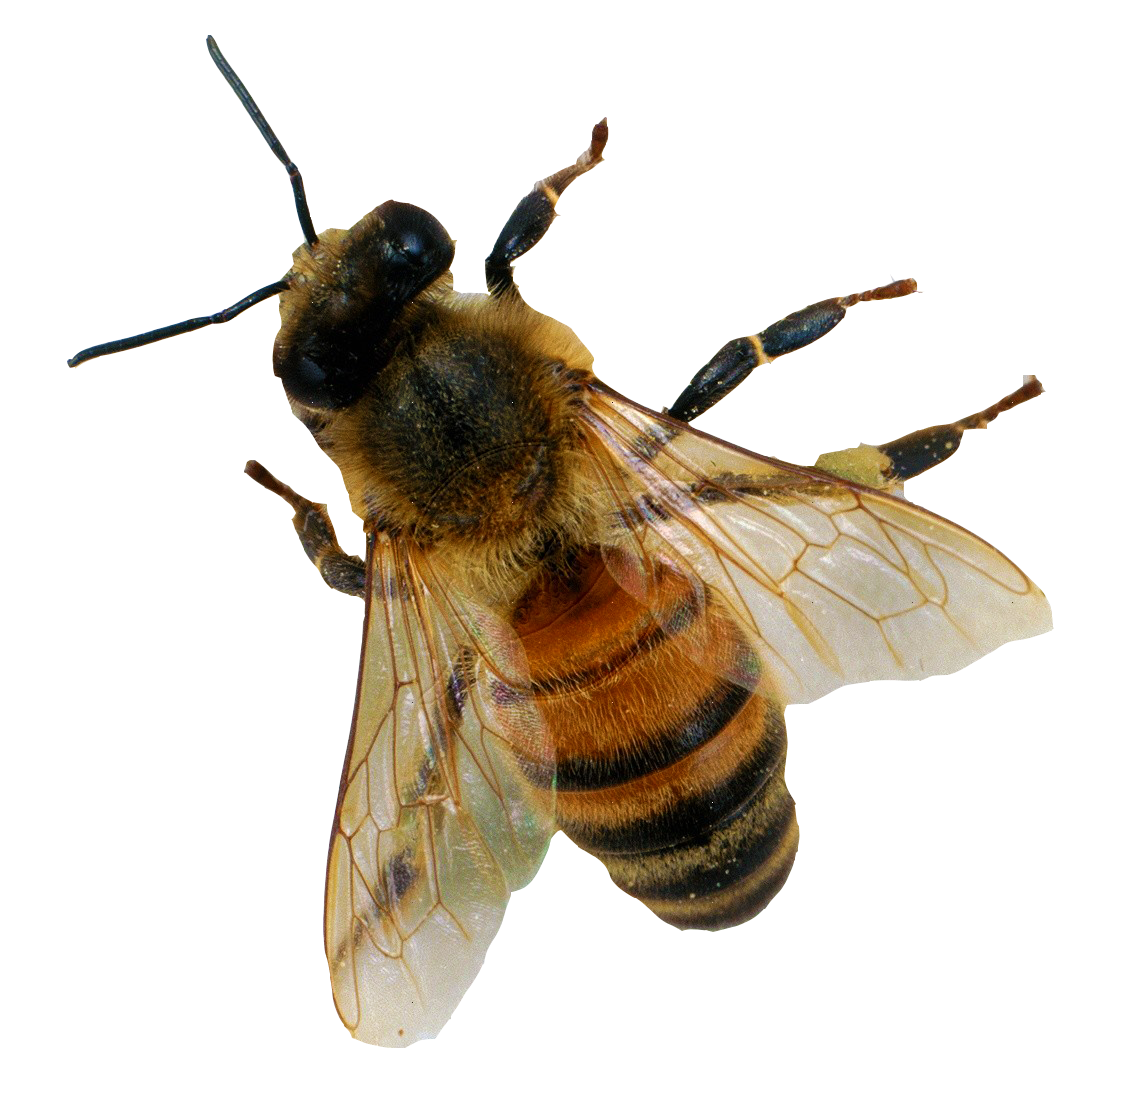 Bee transparent png. Images all